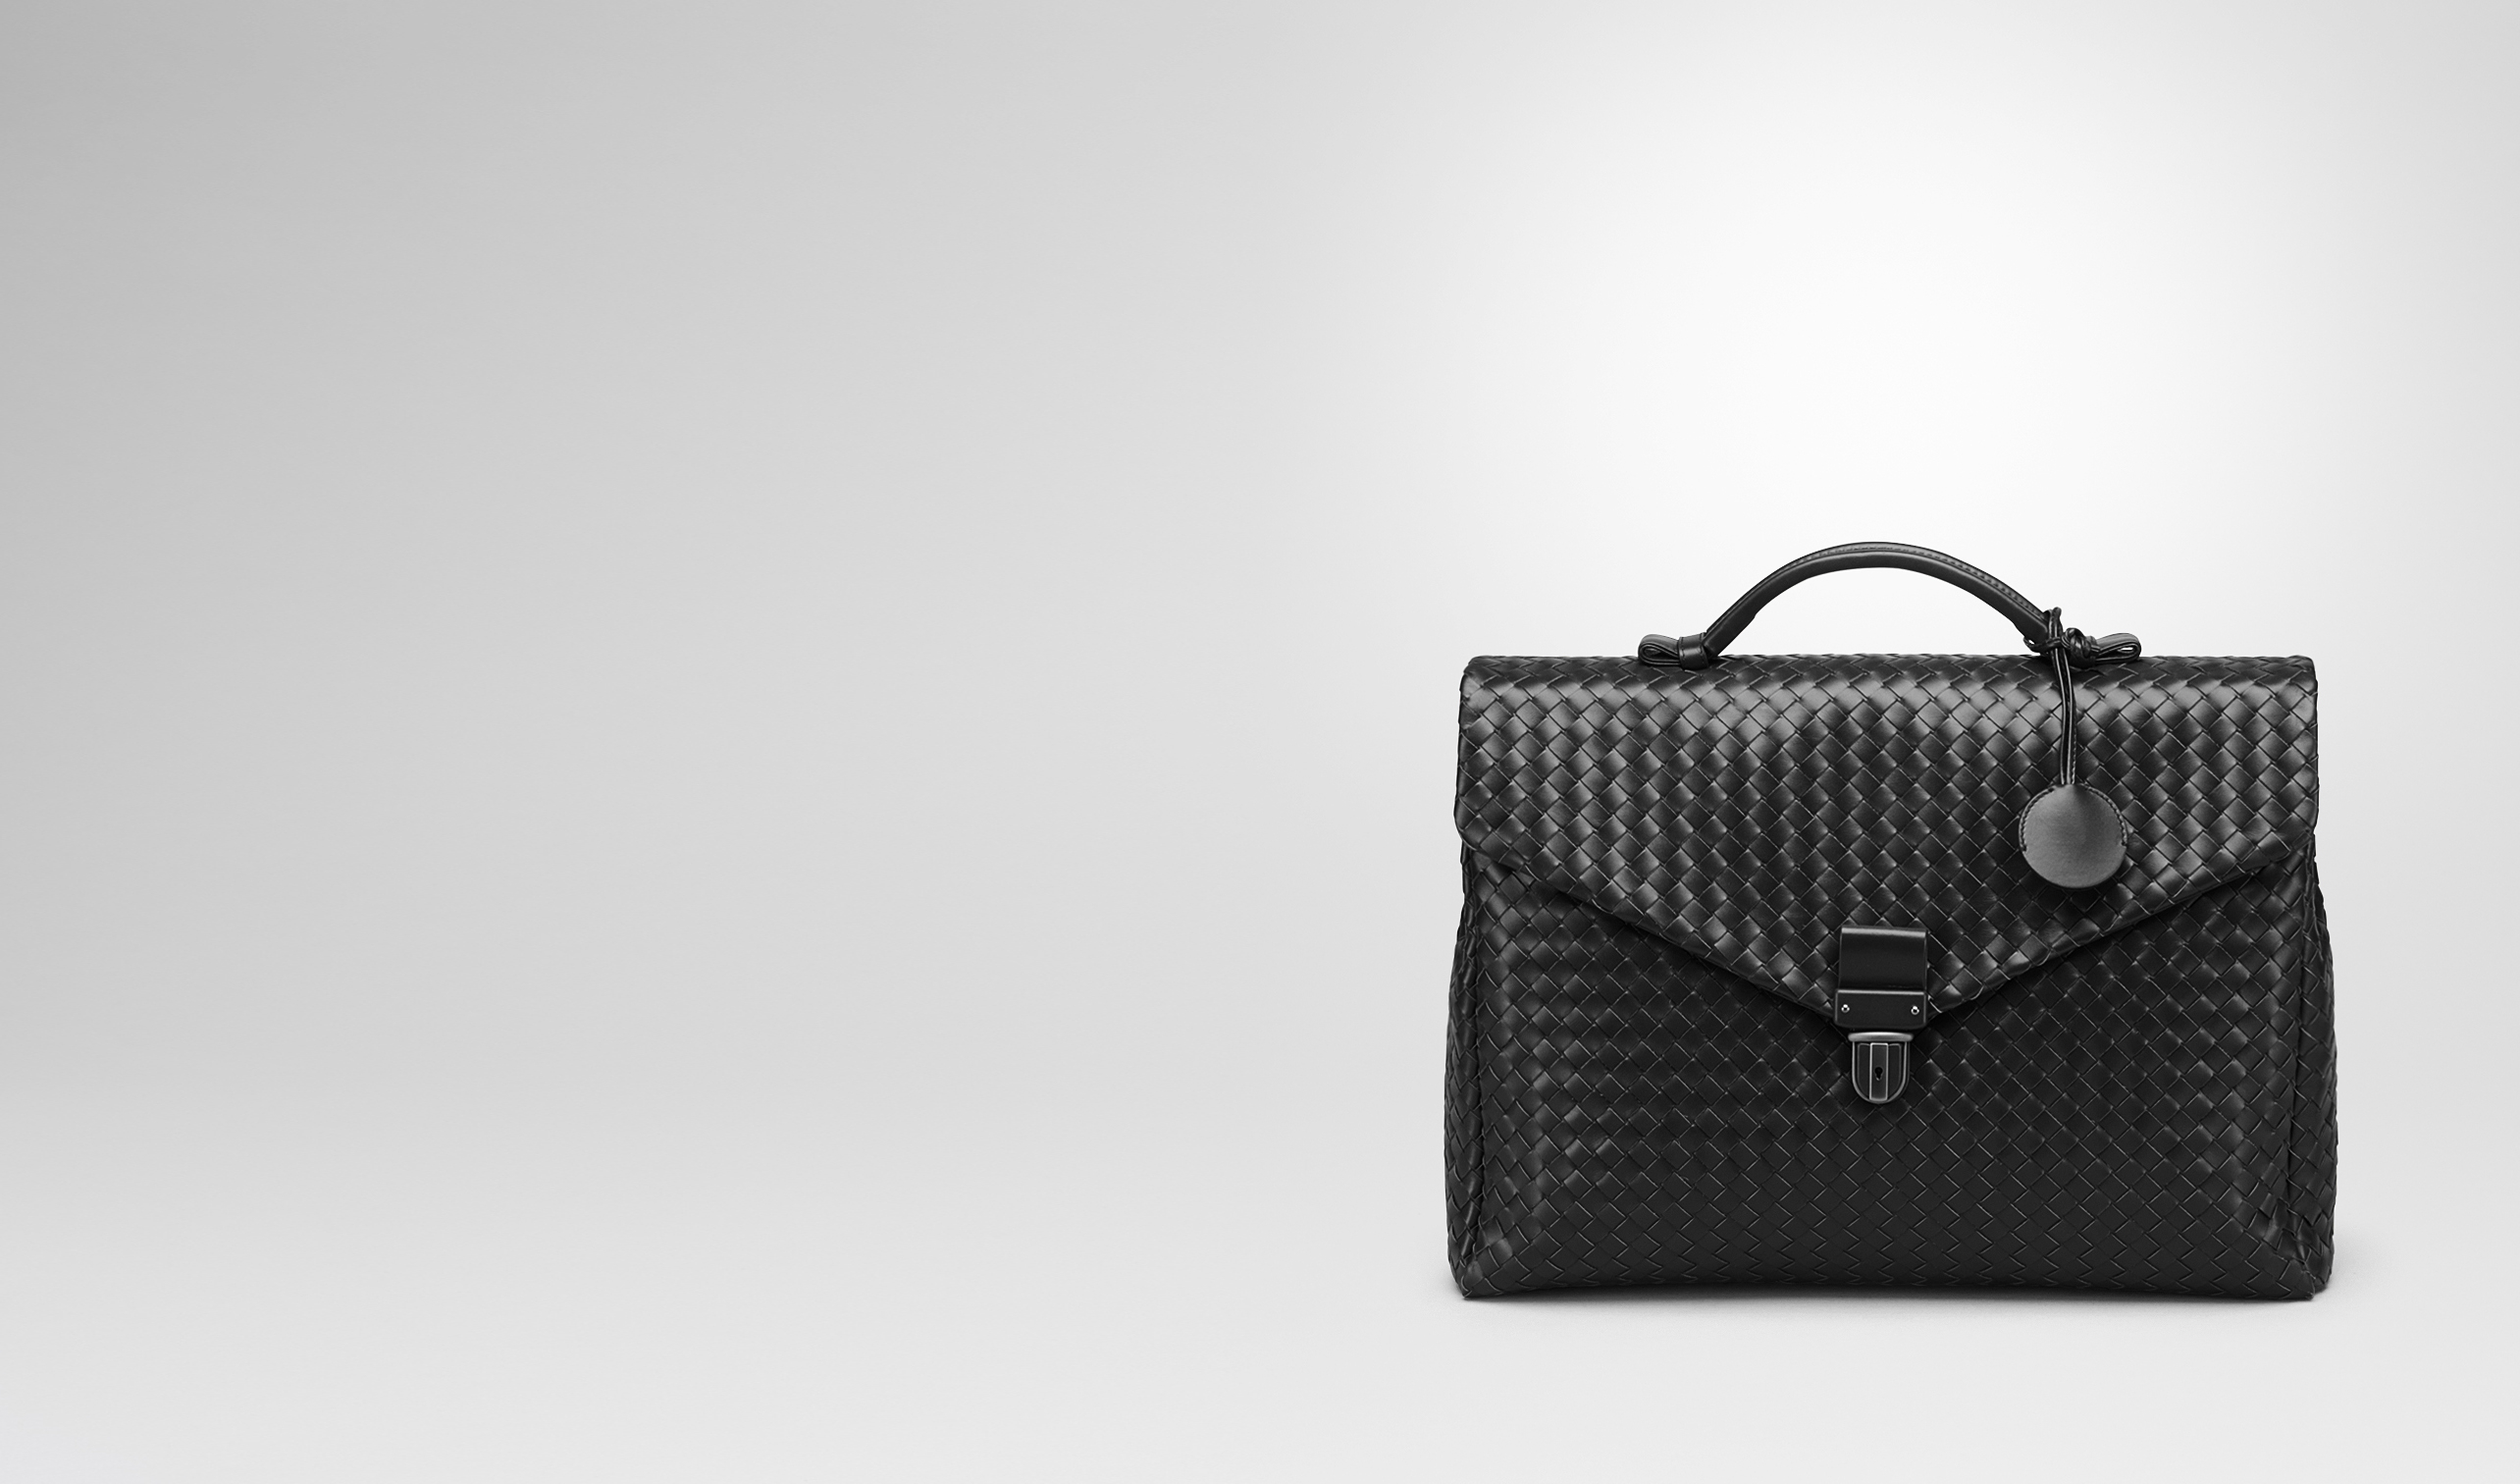 BOTTEGA VENETA Business Tasche U KLEINE AKTENTASCHE AUS INTRECCIATO VN IN NERO pl